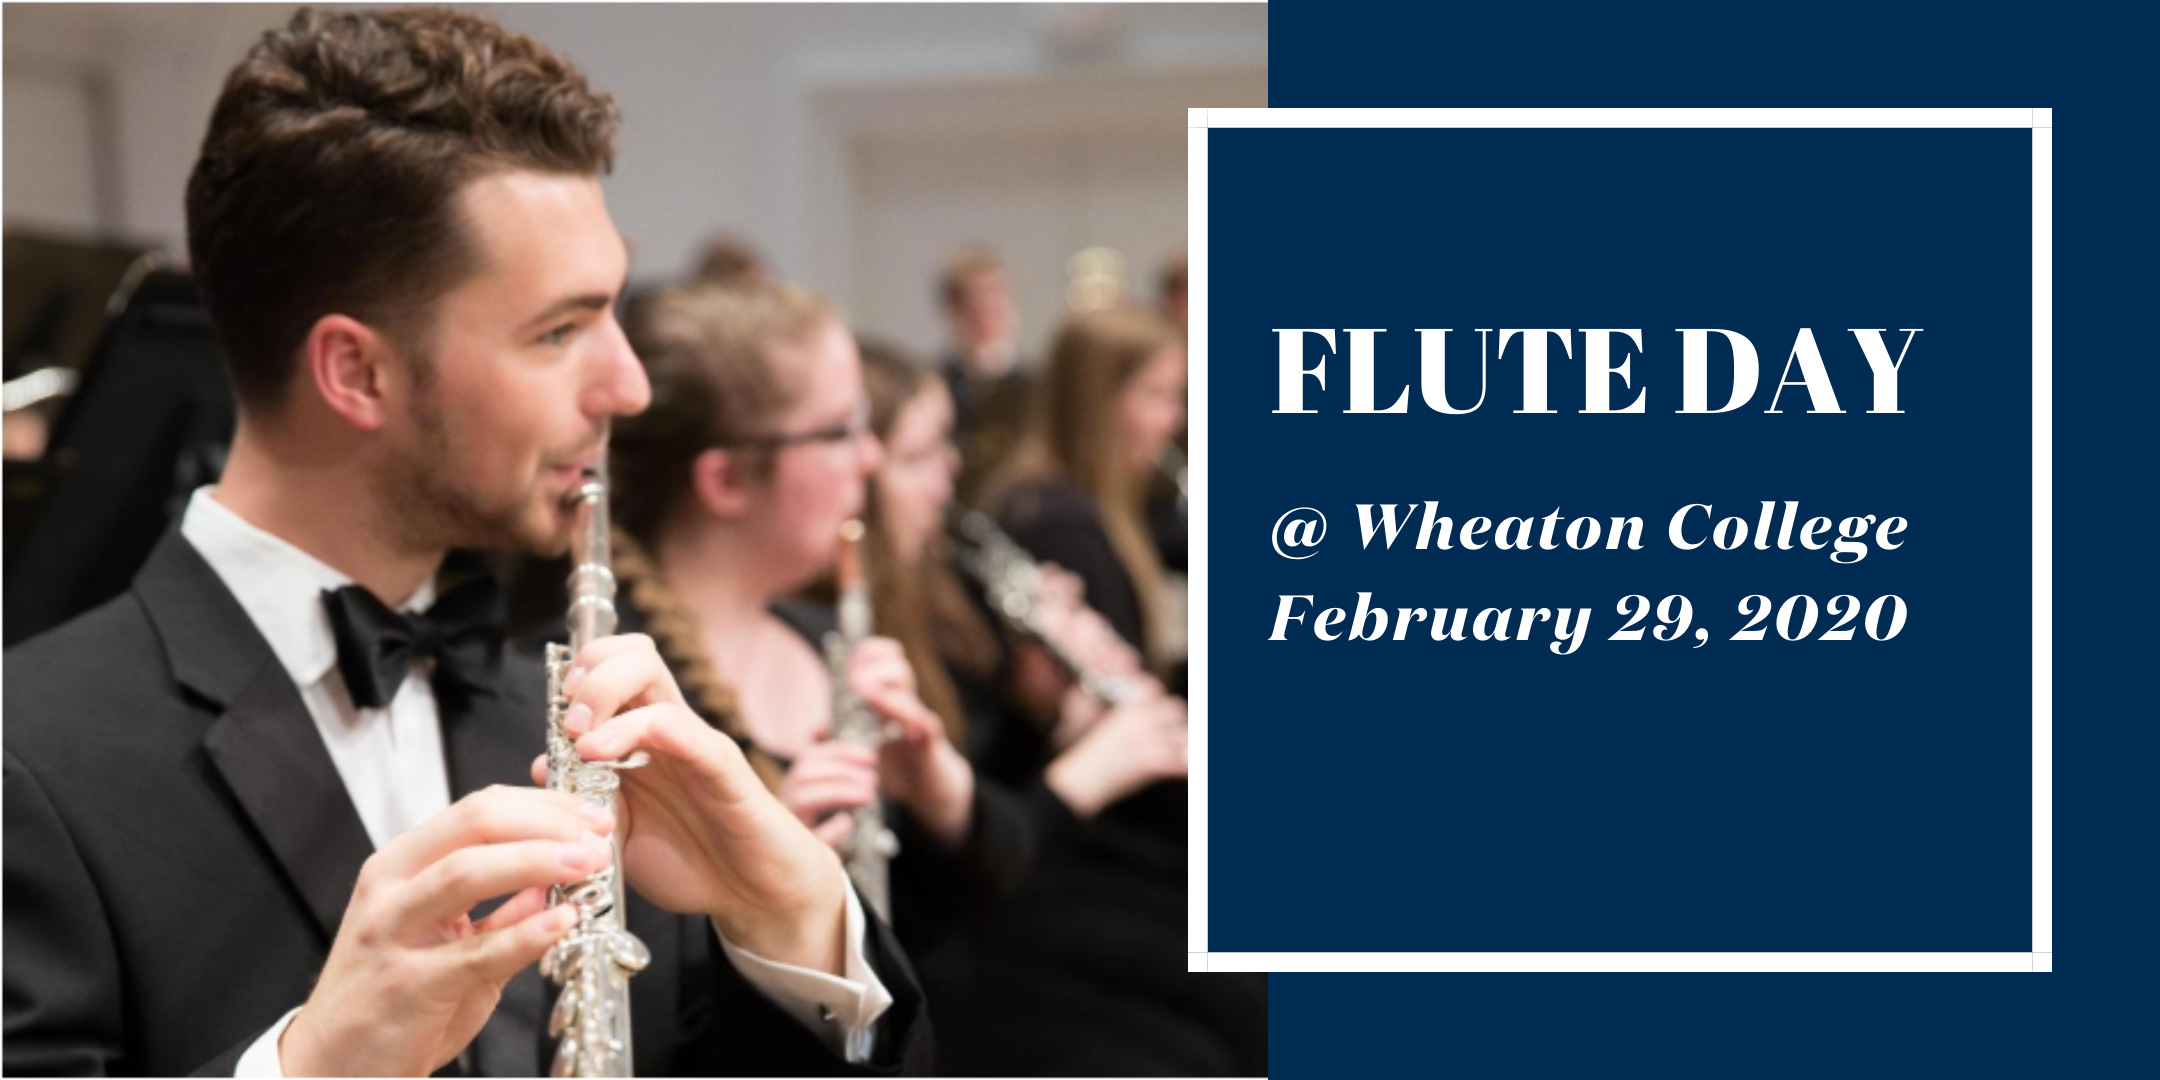 Flute Day at Wheaton College